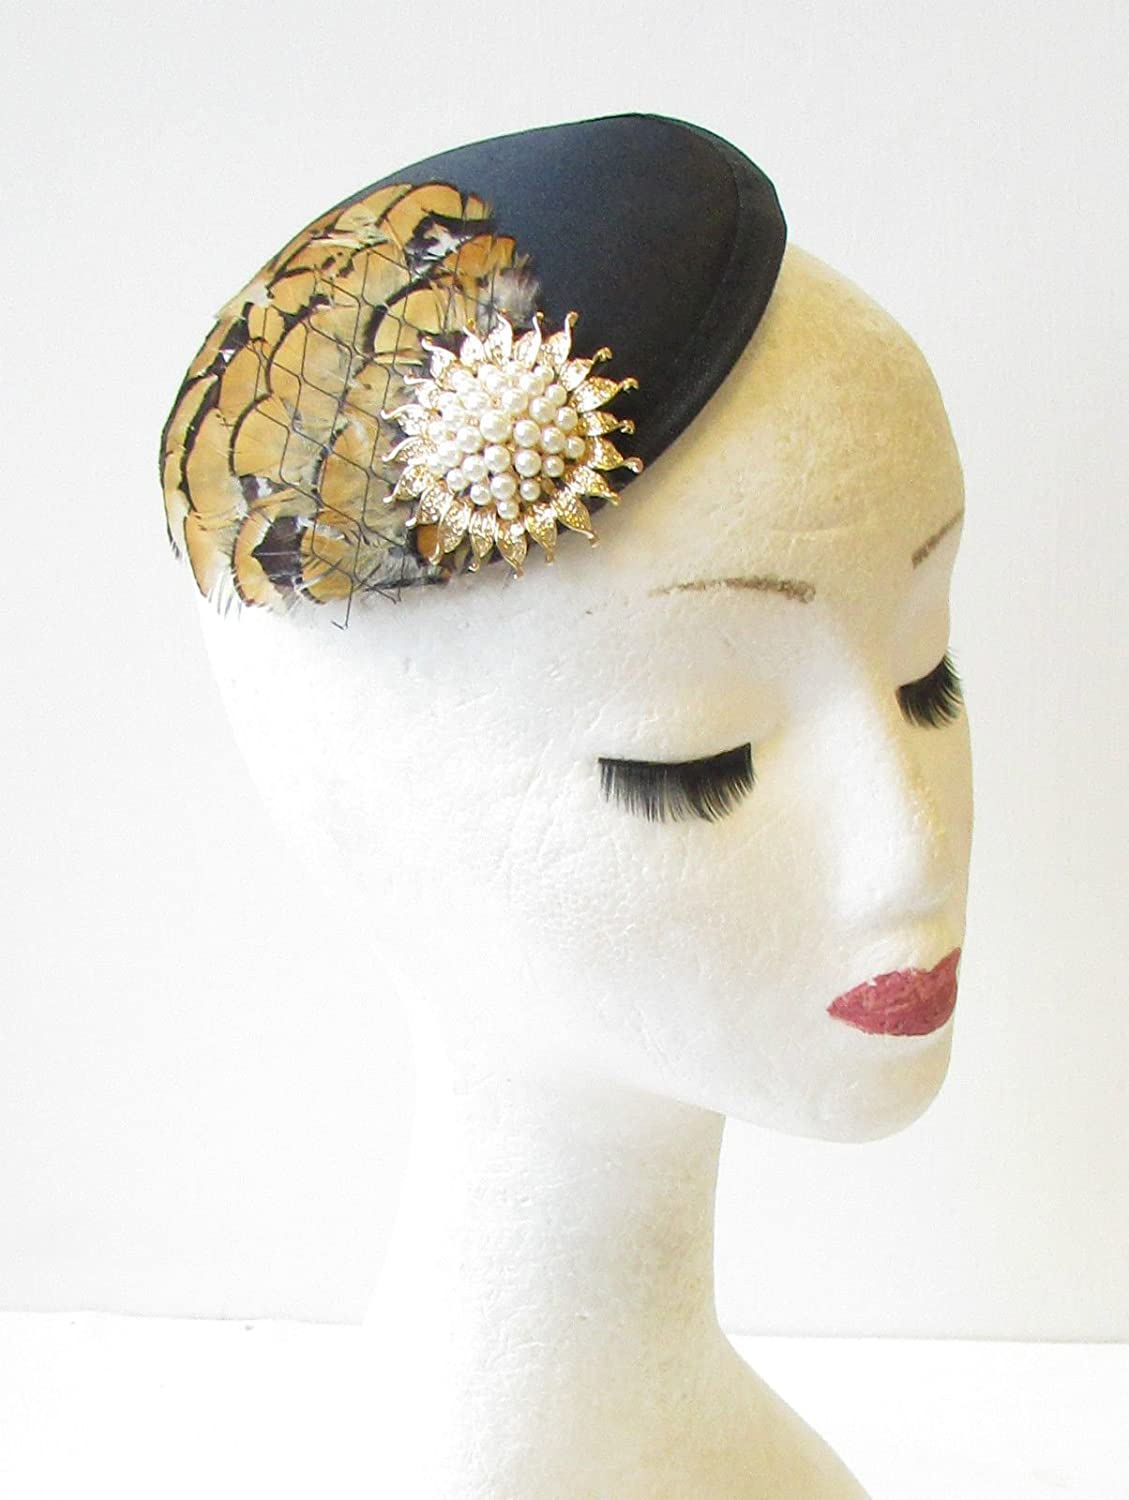 ced0ecc20d605 Black Mustard Brown Gold Pheasant Feather Fascinator Races 40s Hair Vintage  1429  EXCLUSIVELY SOLD BY STARCROSSED BEAUTY   Amazon.co.uk  Beauty